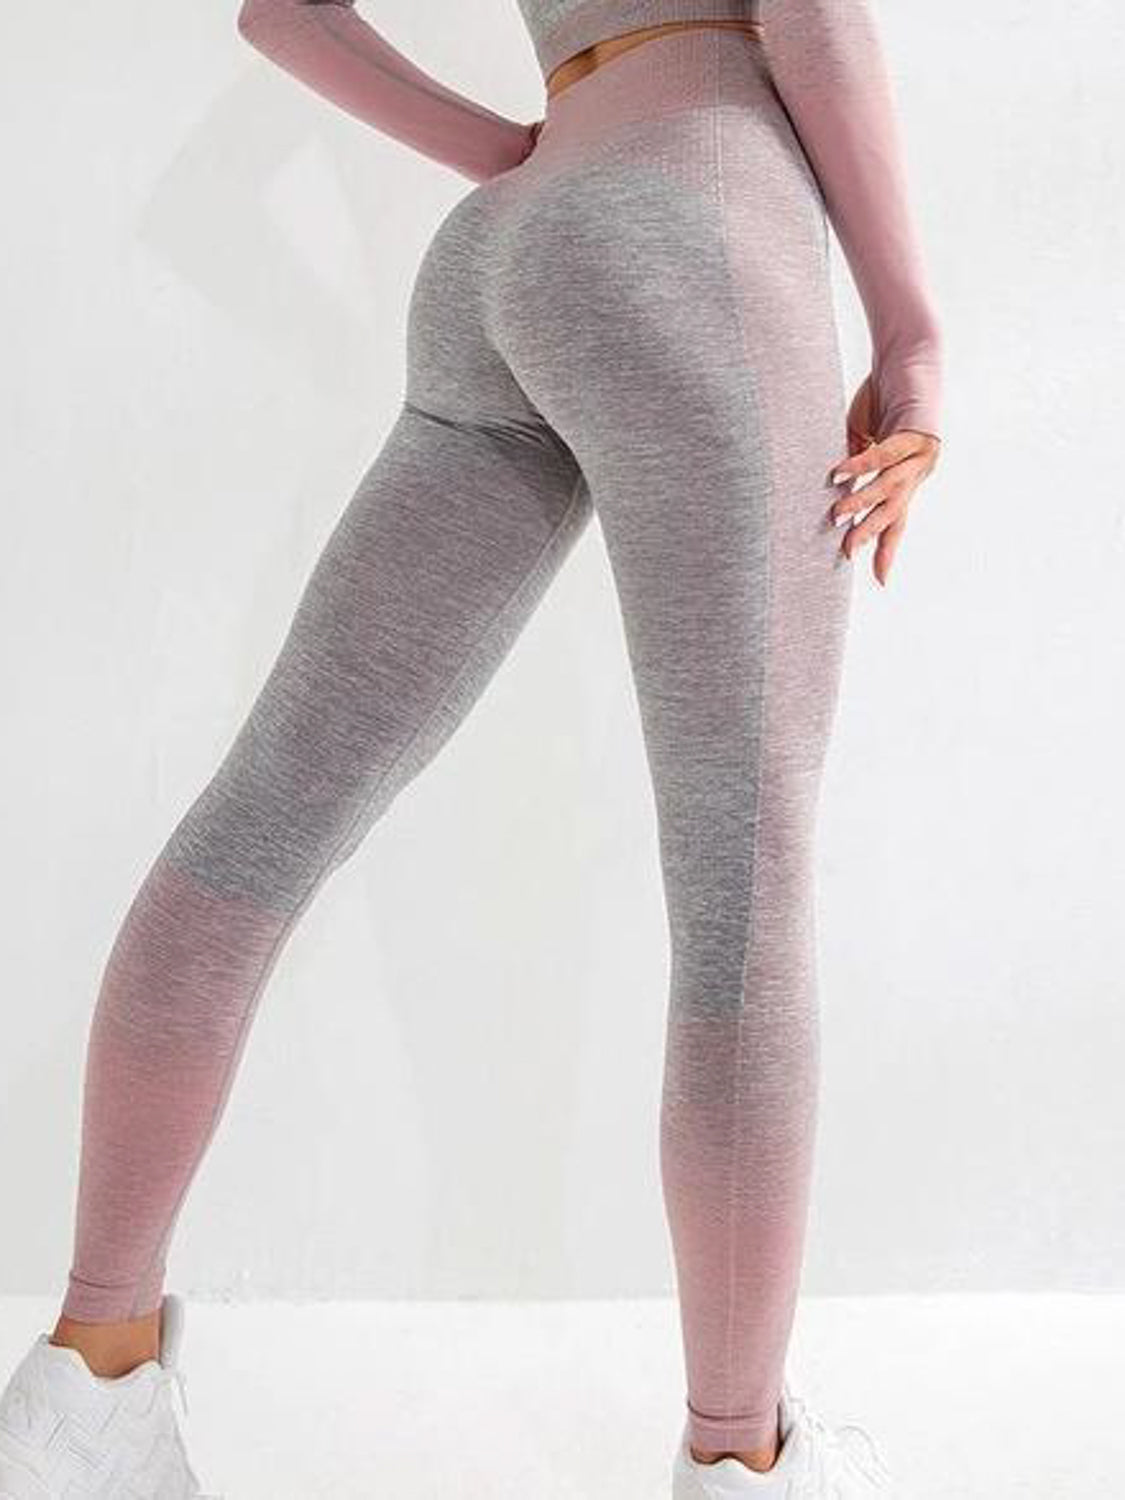 MOVI Rise Full Length Leggings - Grey/Pink